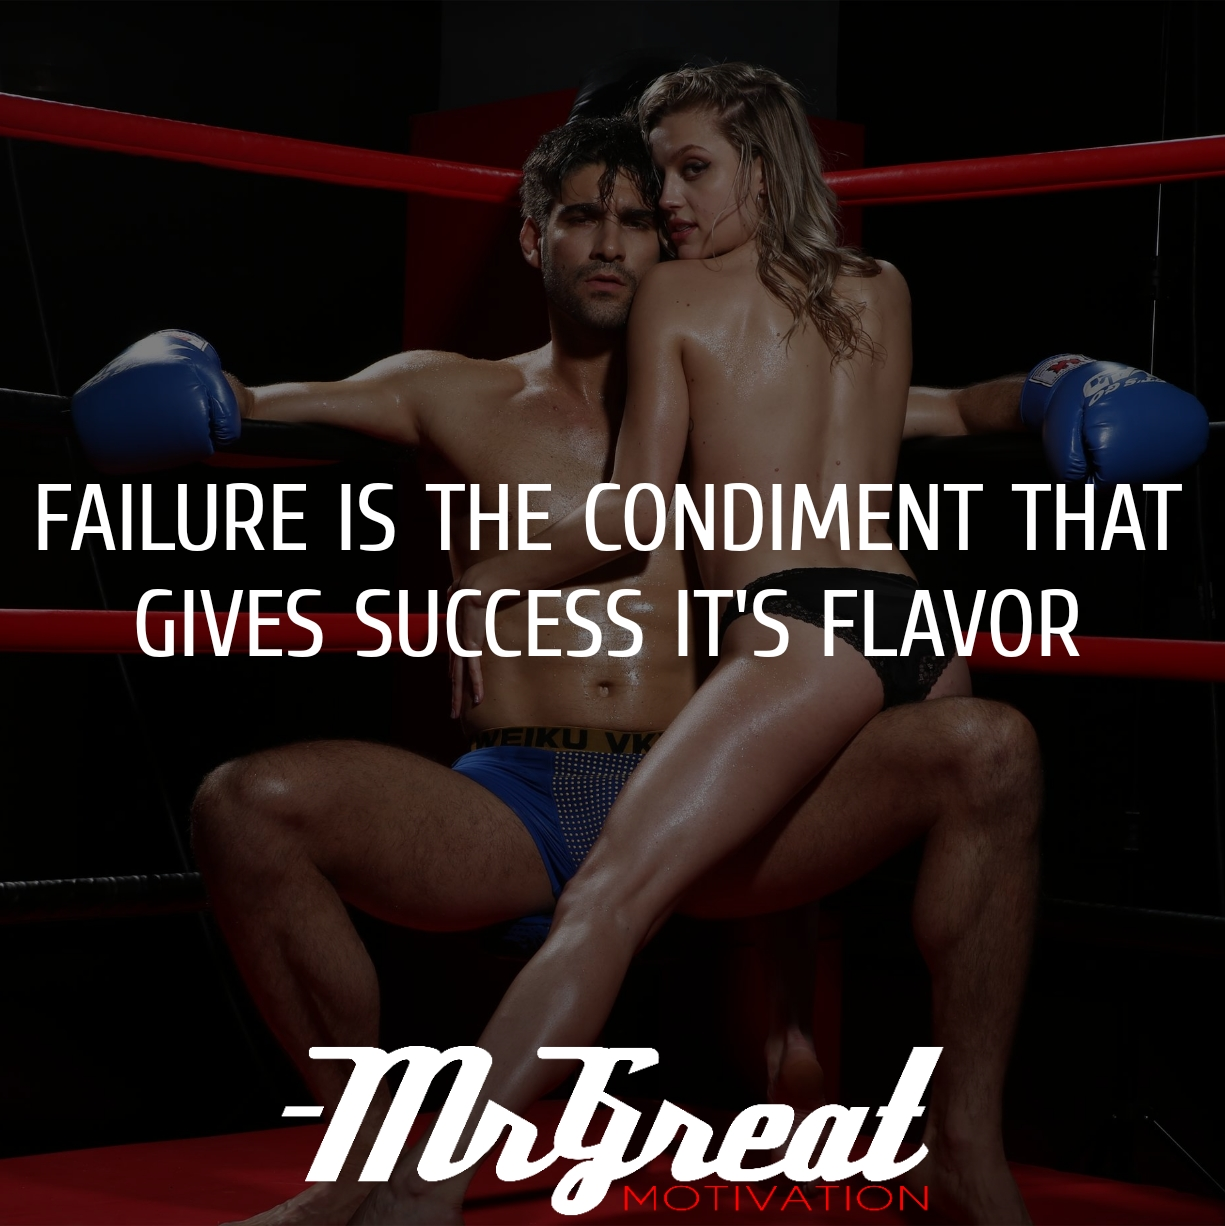 Failure is the condiment that gives success its flavor - Truman Capote